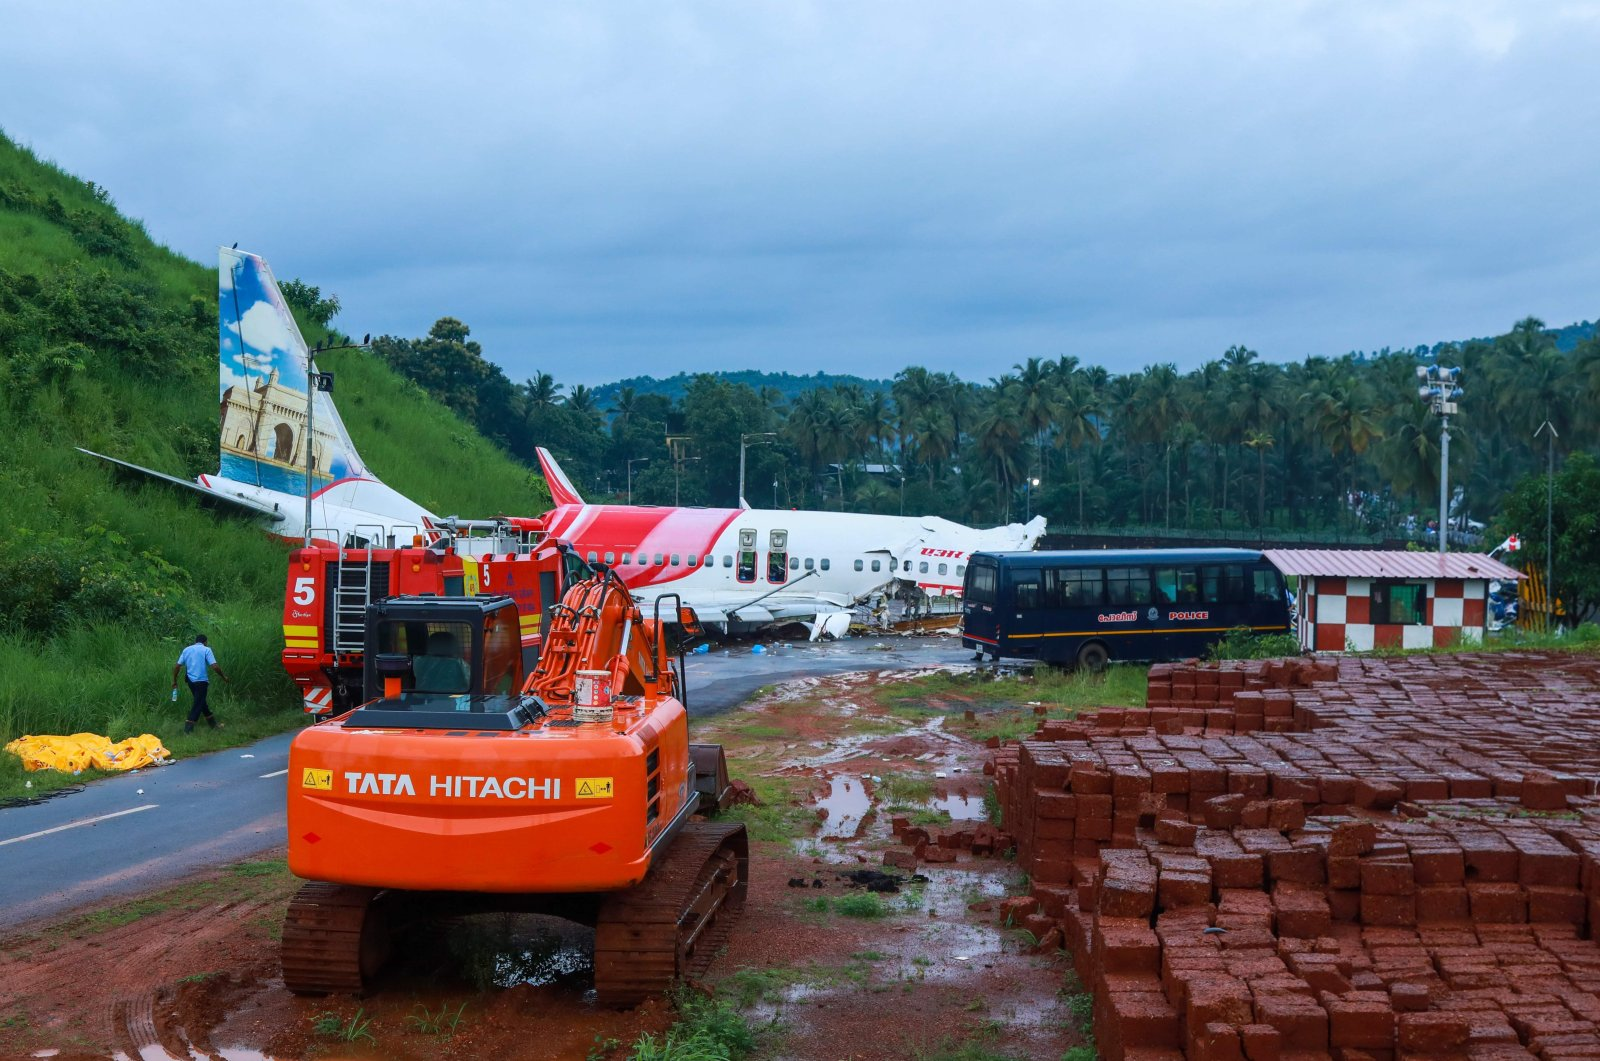 Rescue vehicles near the wreckage of an Air India Express jet at Calicut International Airport in Karipur, Kerala, Aug. 8, 2020. (AFP Photo)